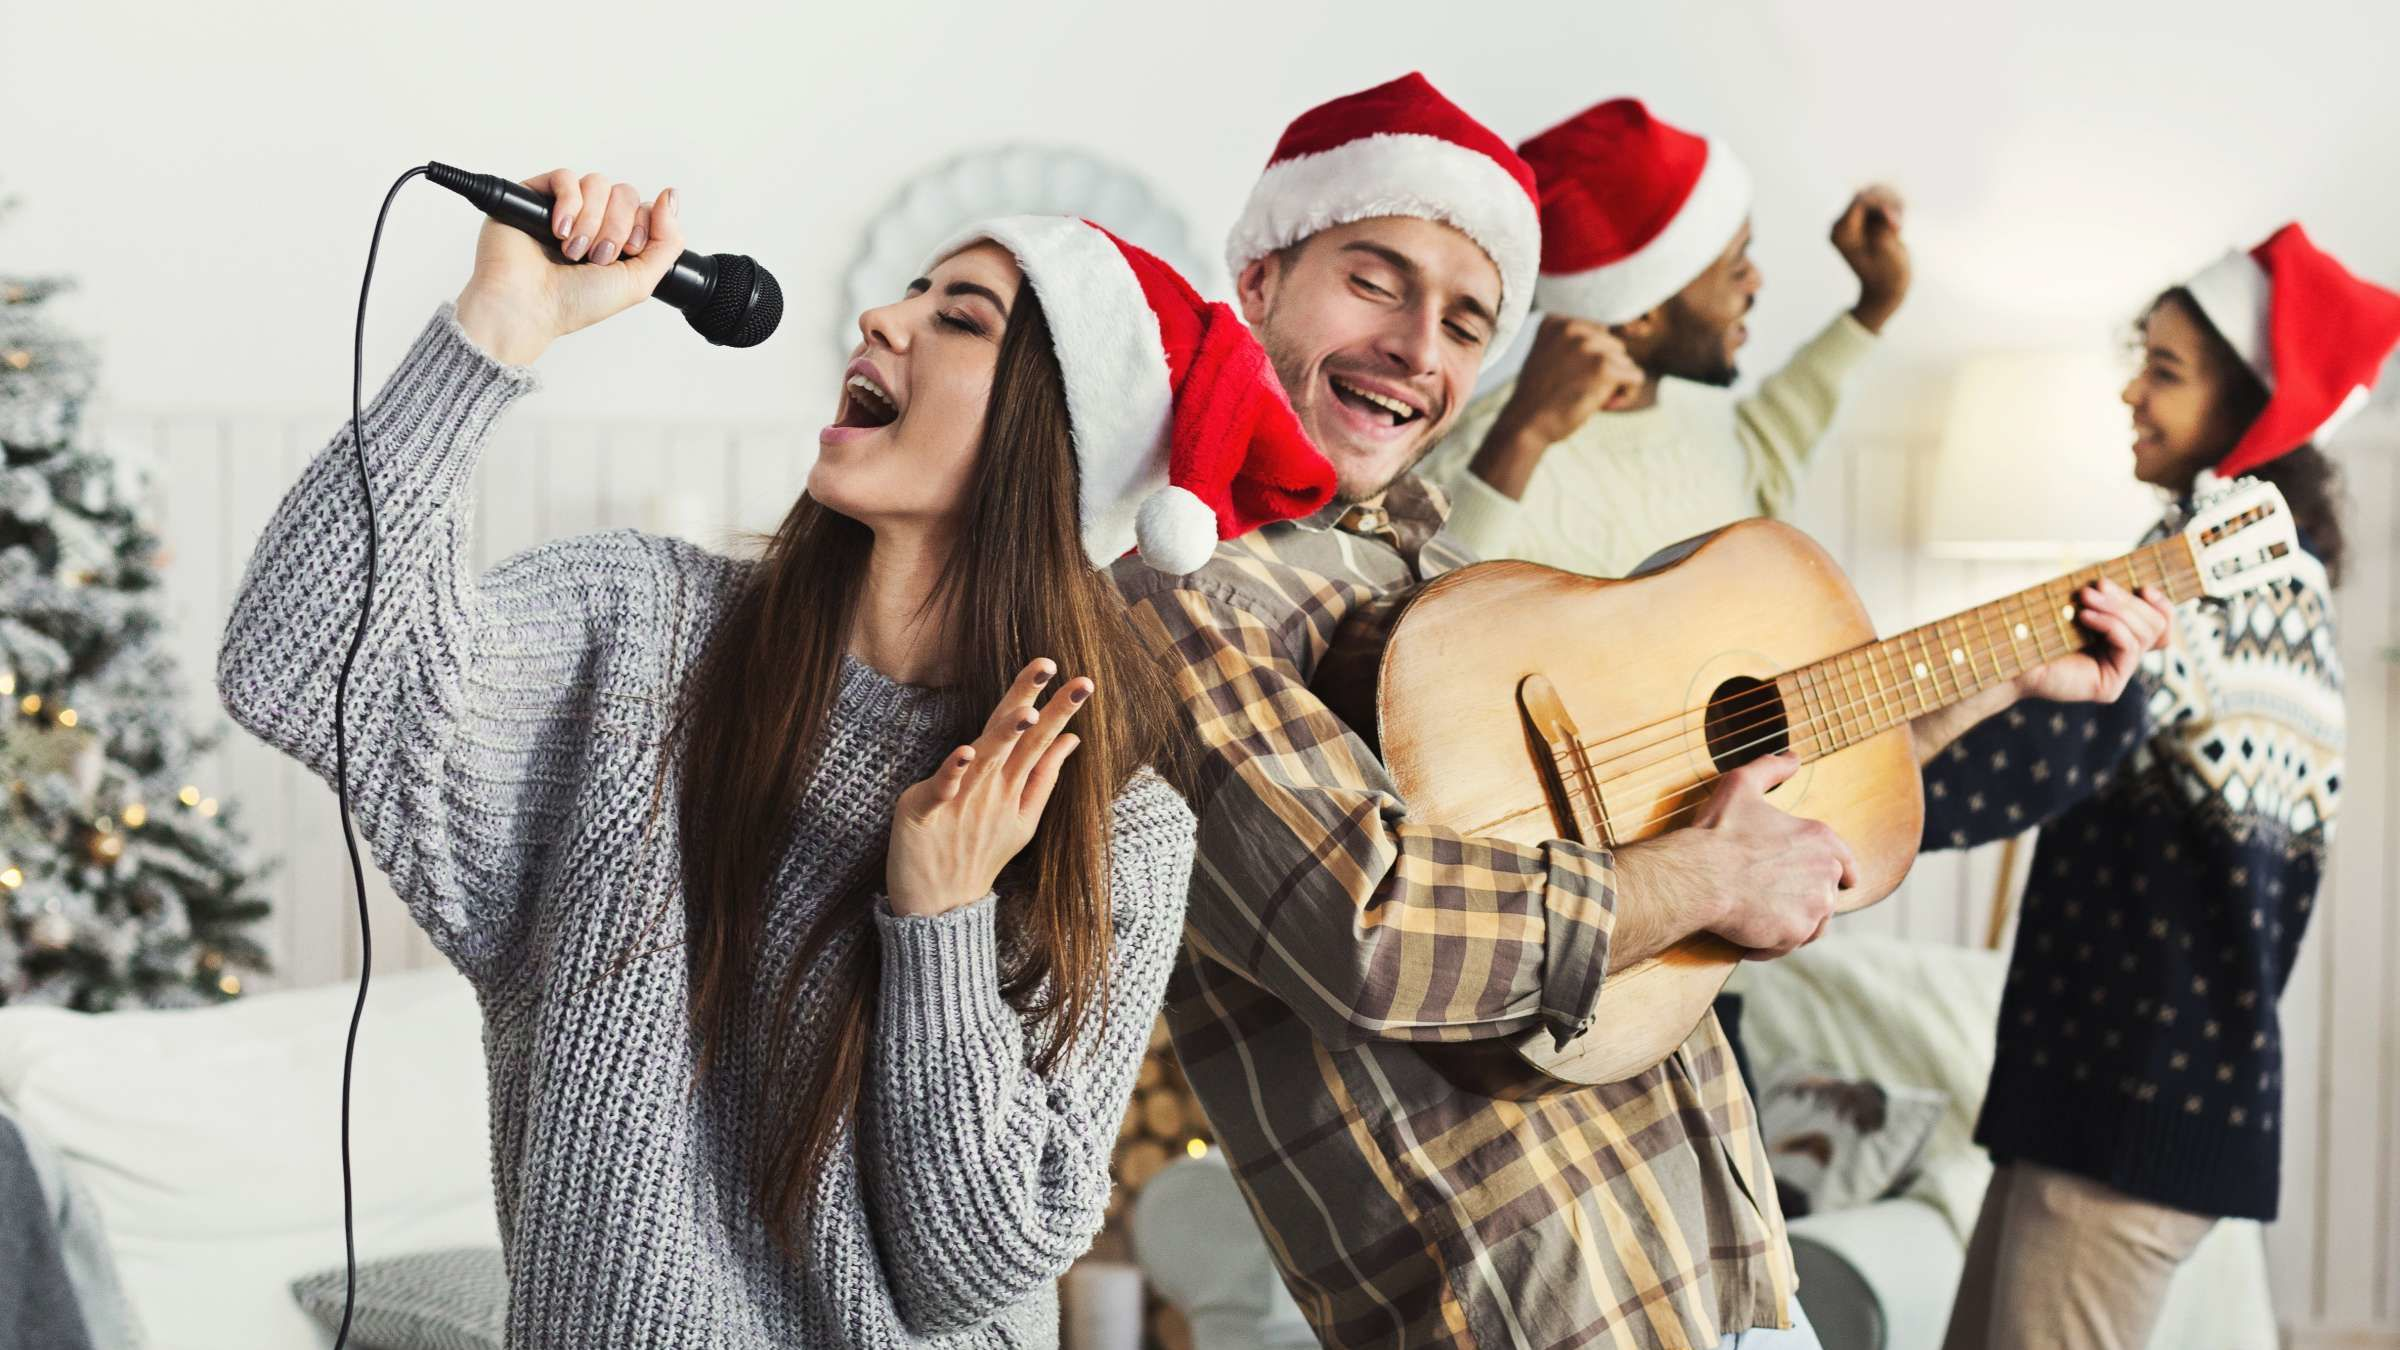 Finish the Verse to the Holiday Song